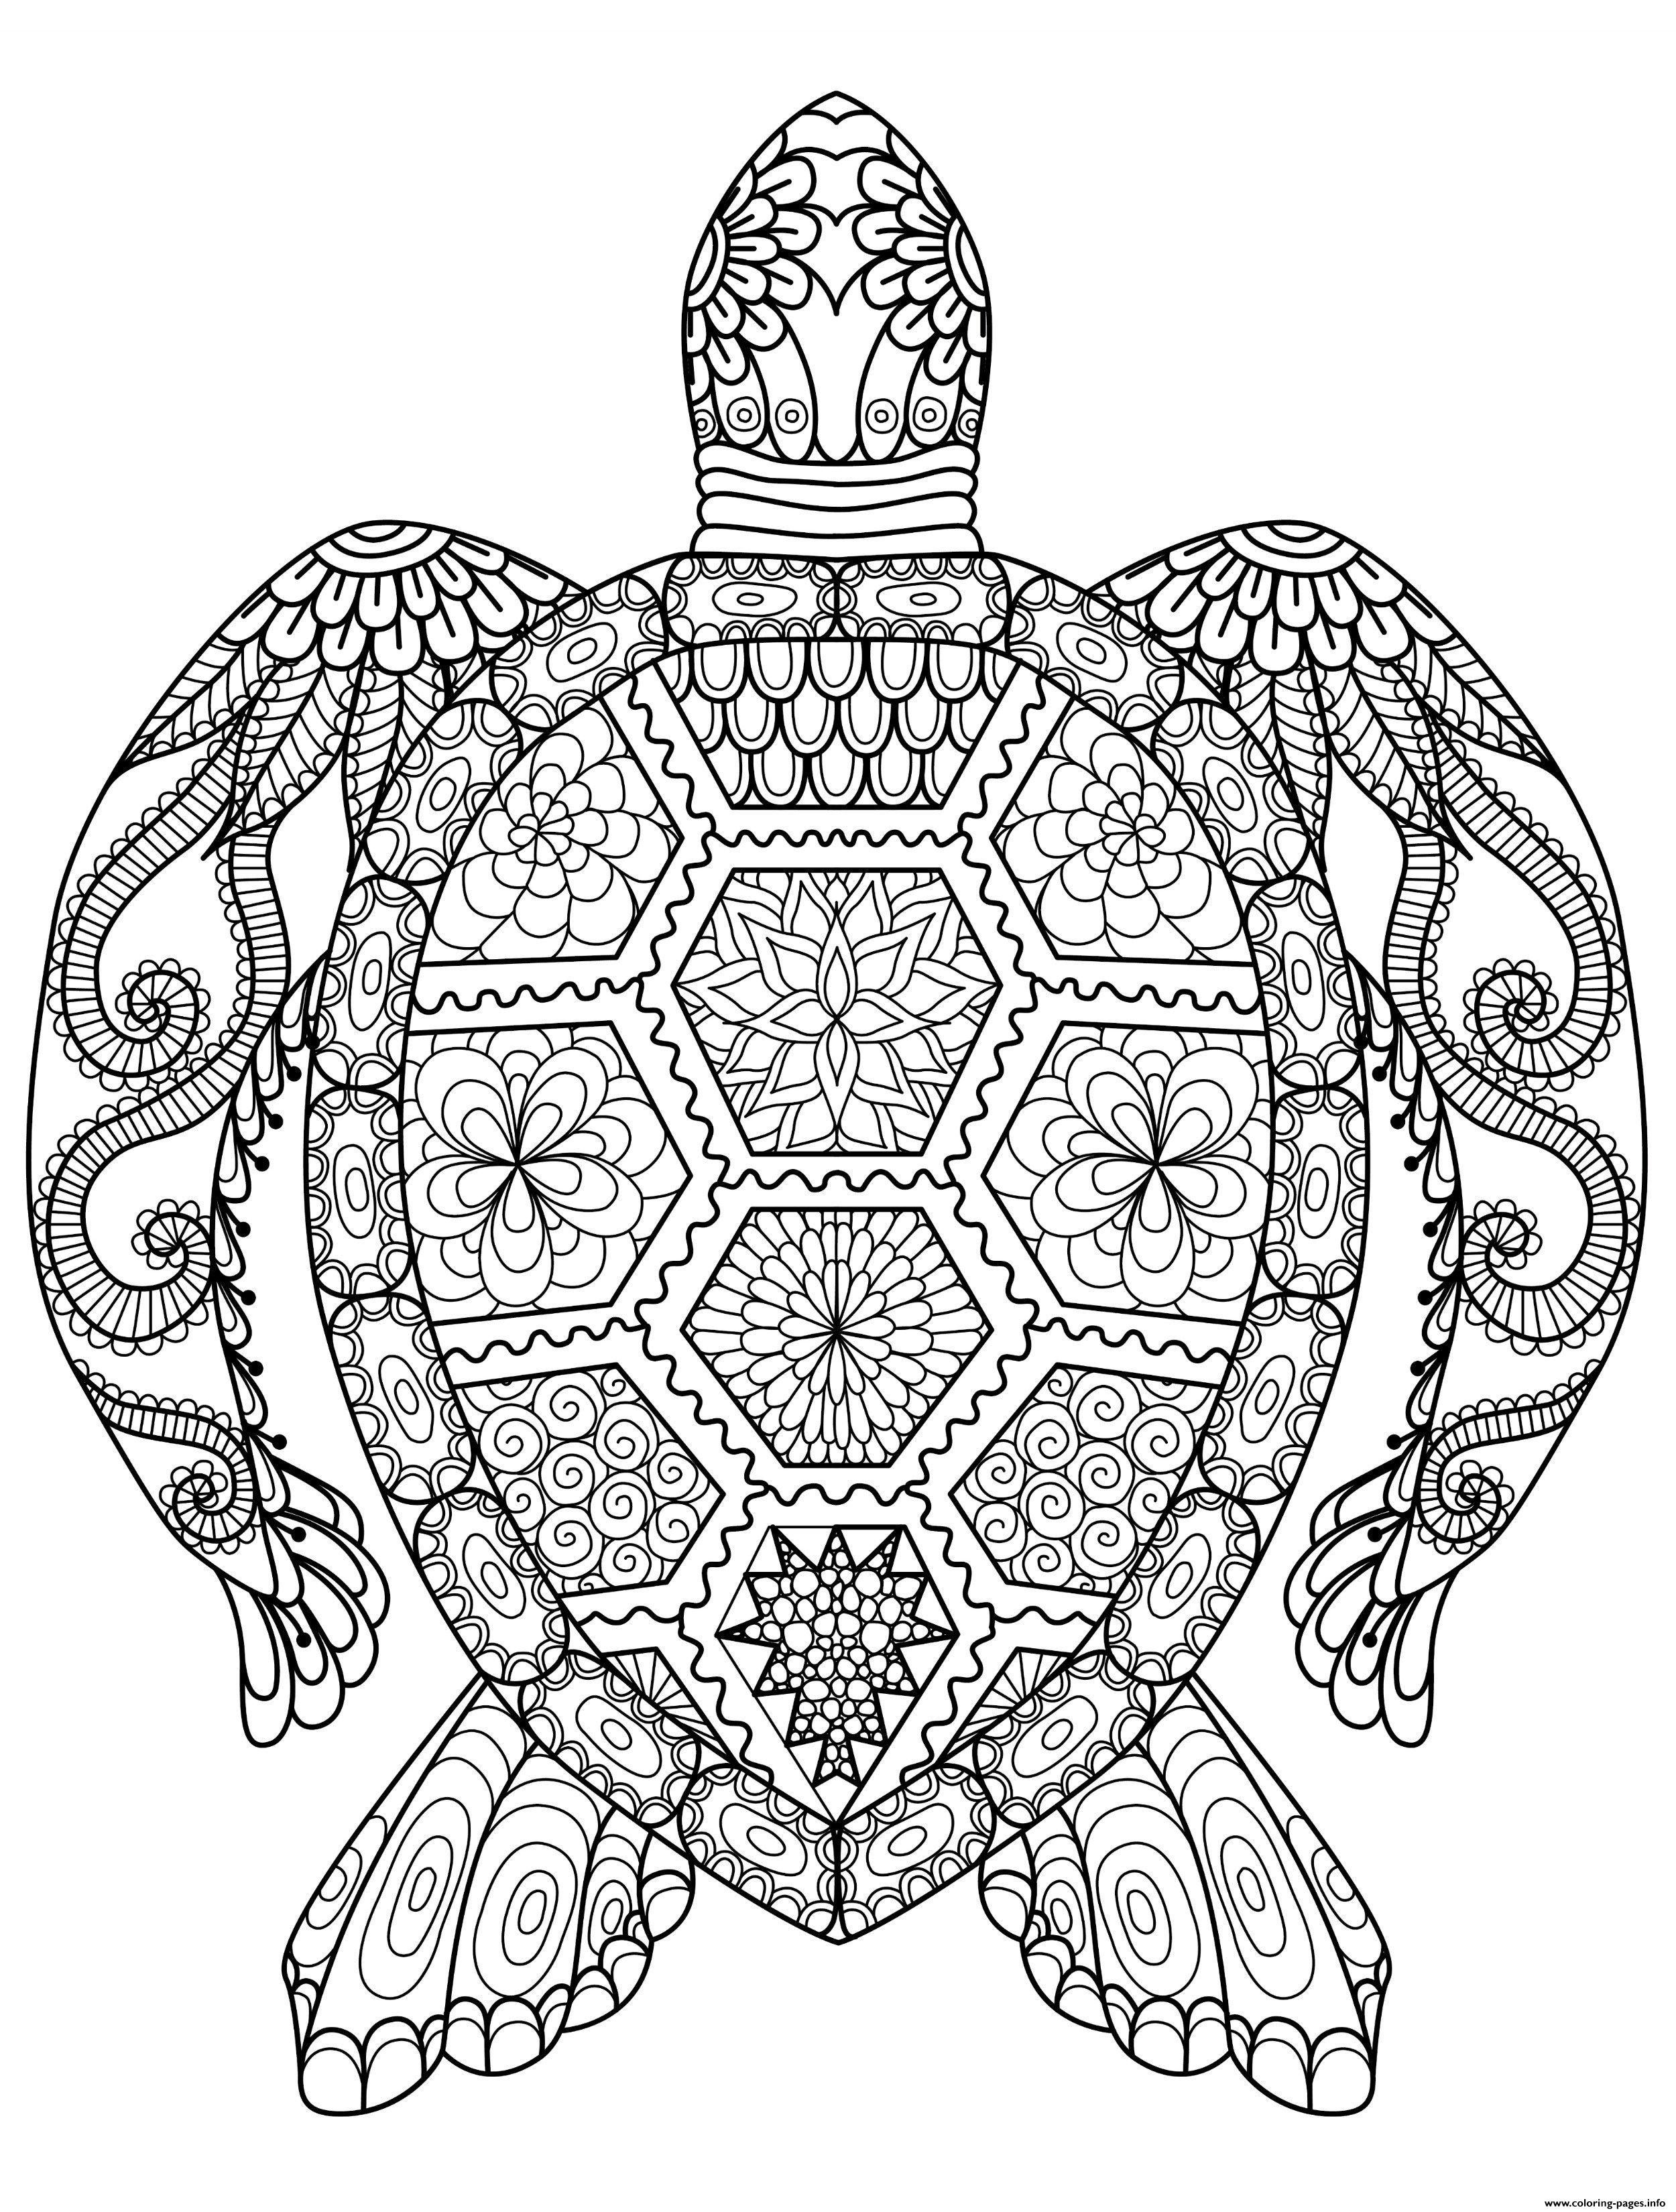 Turtle Coloring Pages Printable Azspringtrainingexperience